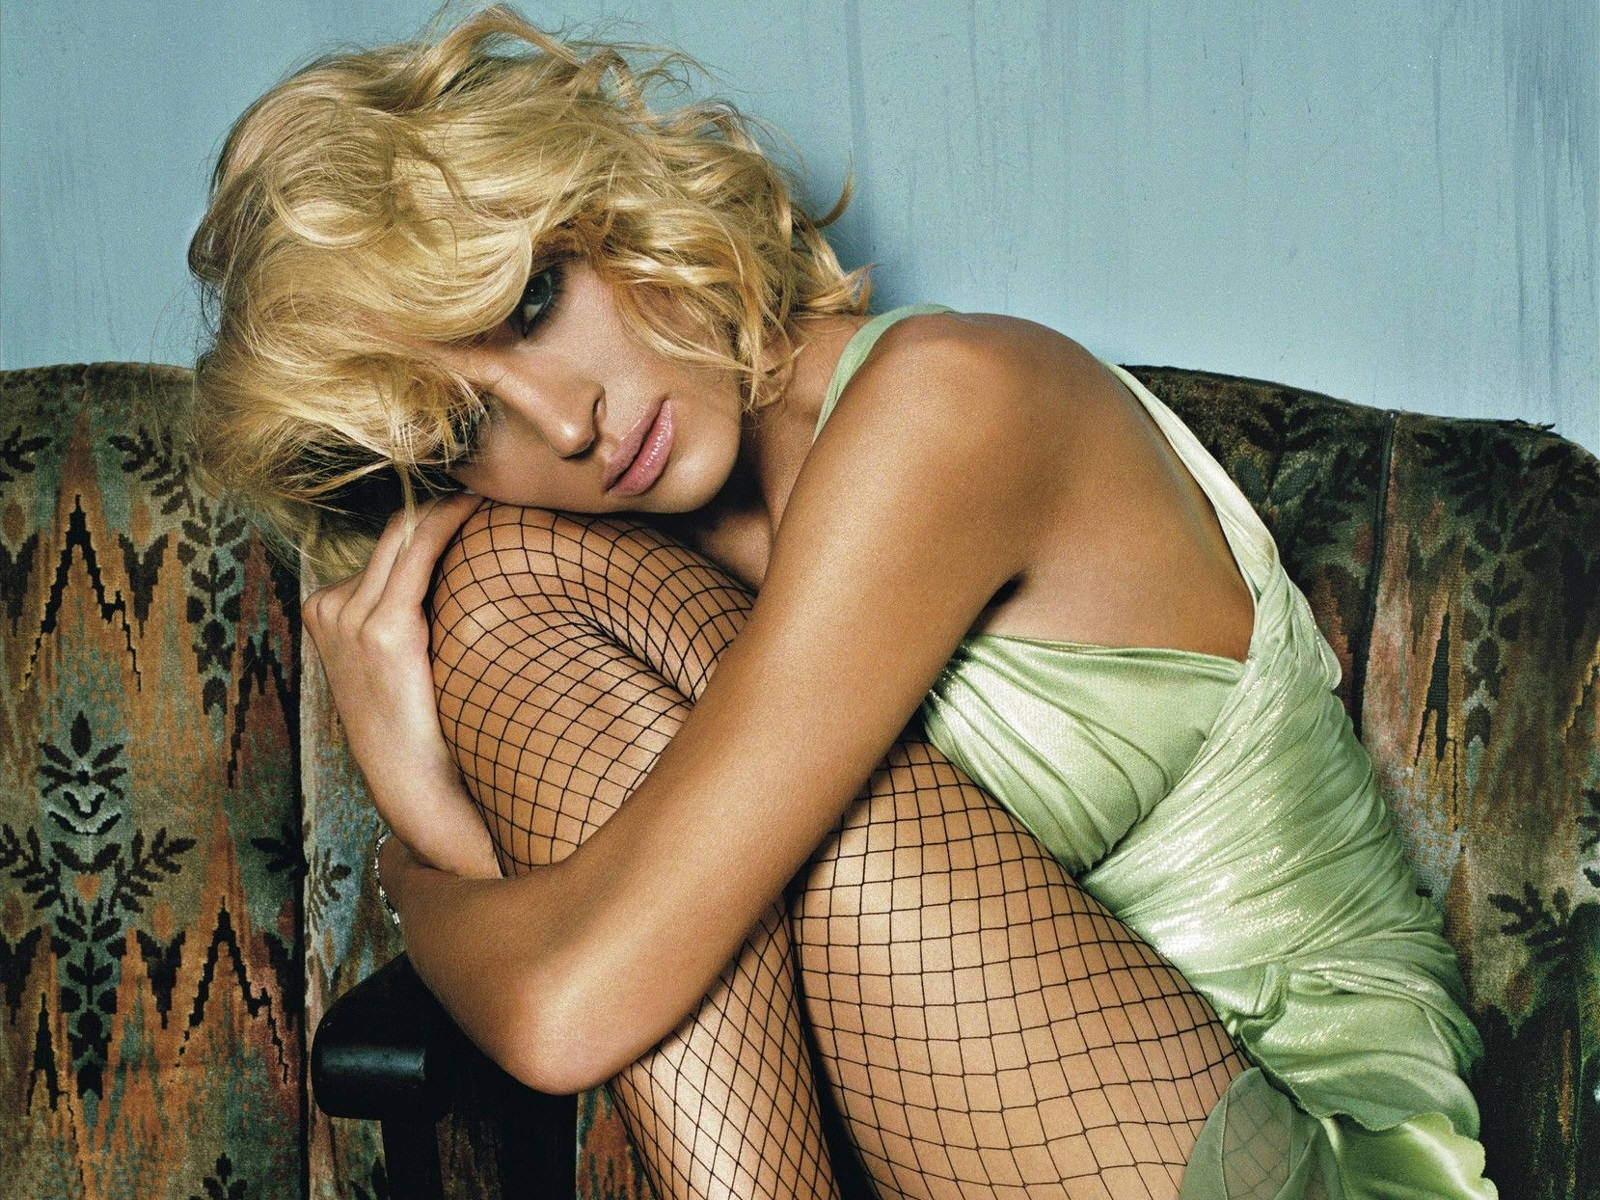 Wallpaper: calze a rete e fascino da diva per Uma Thurman